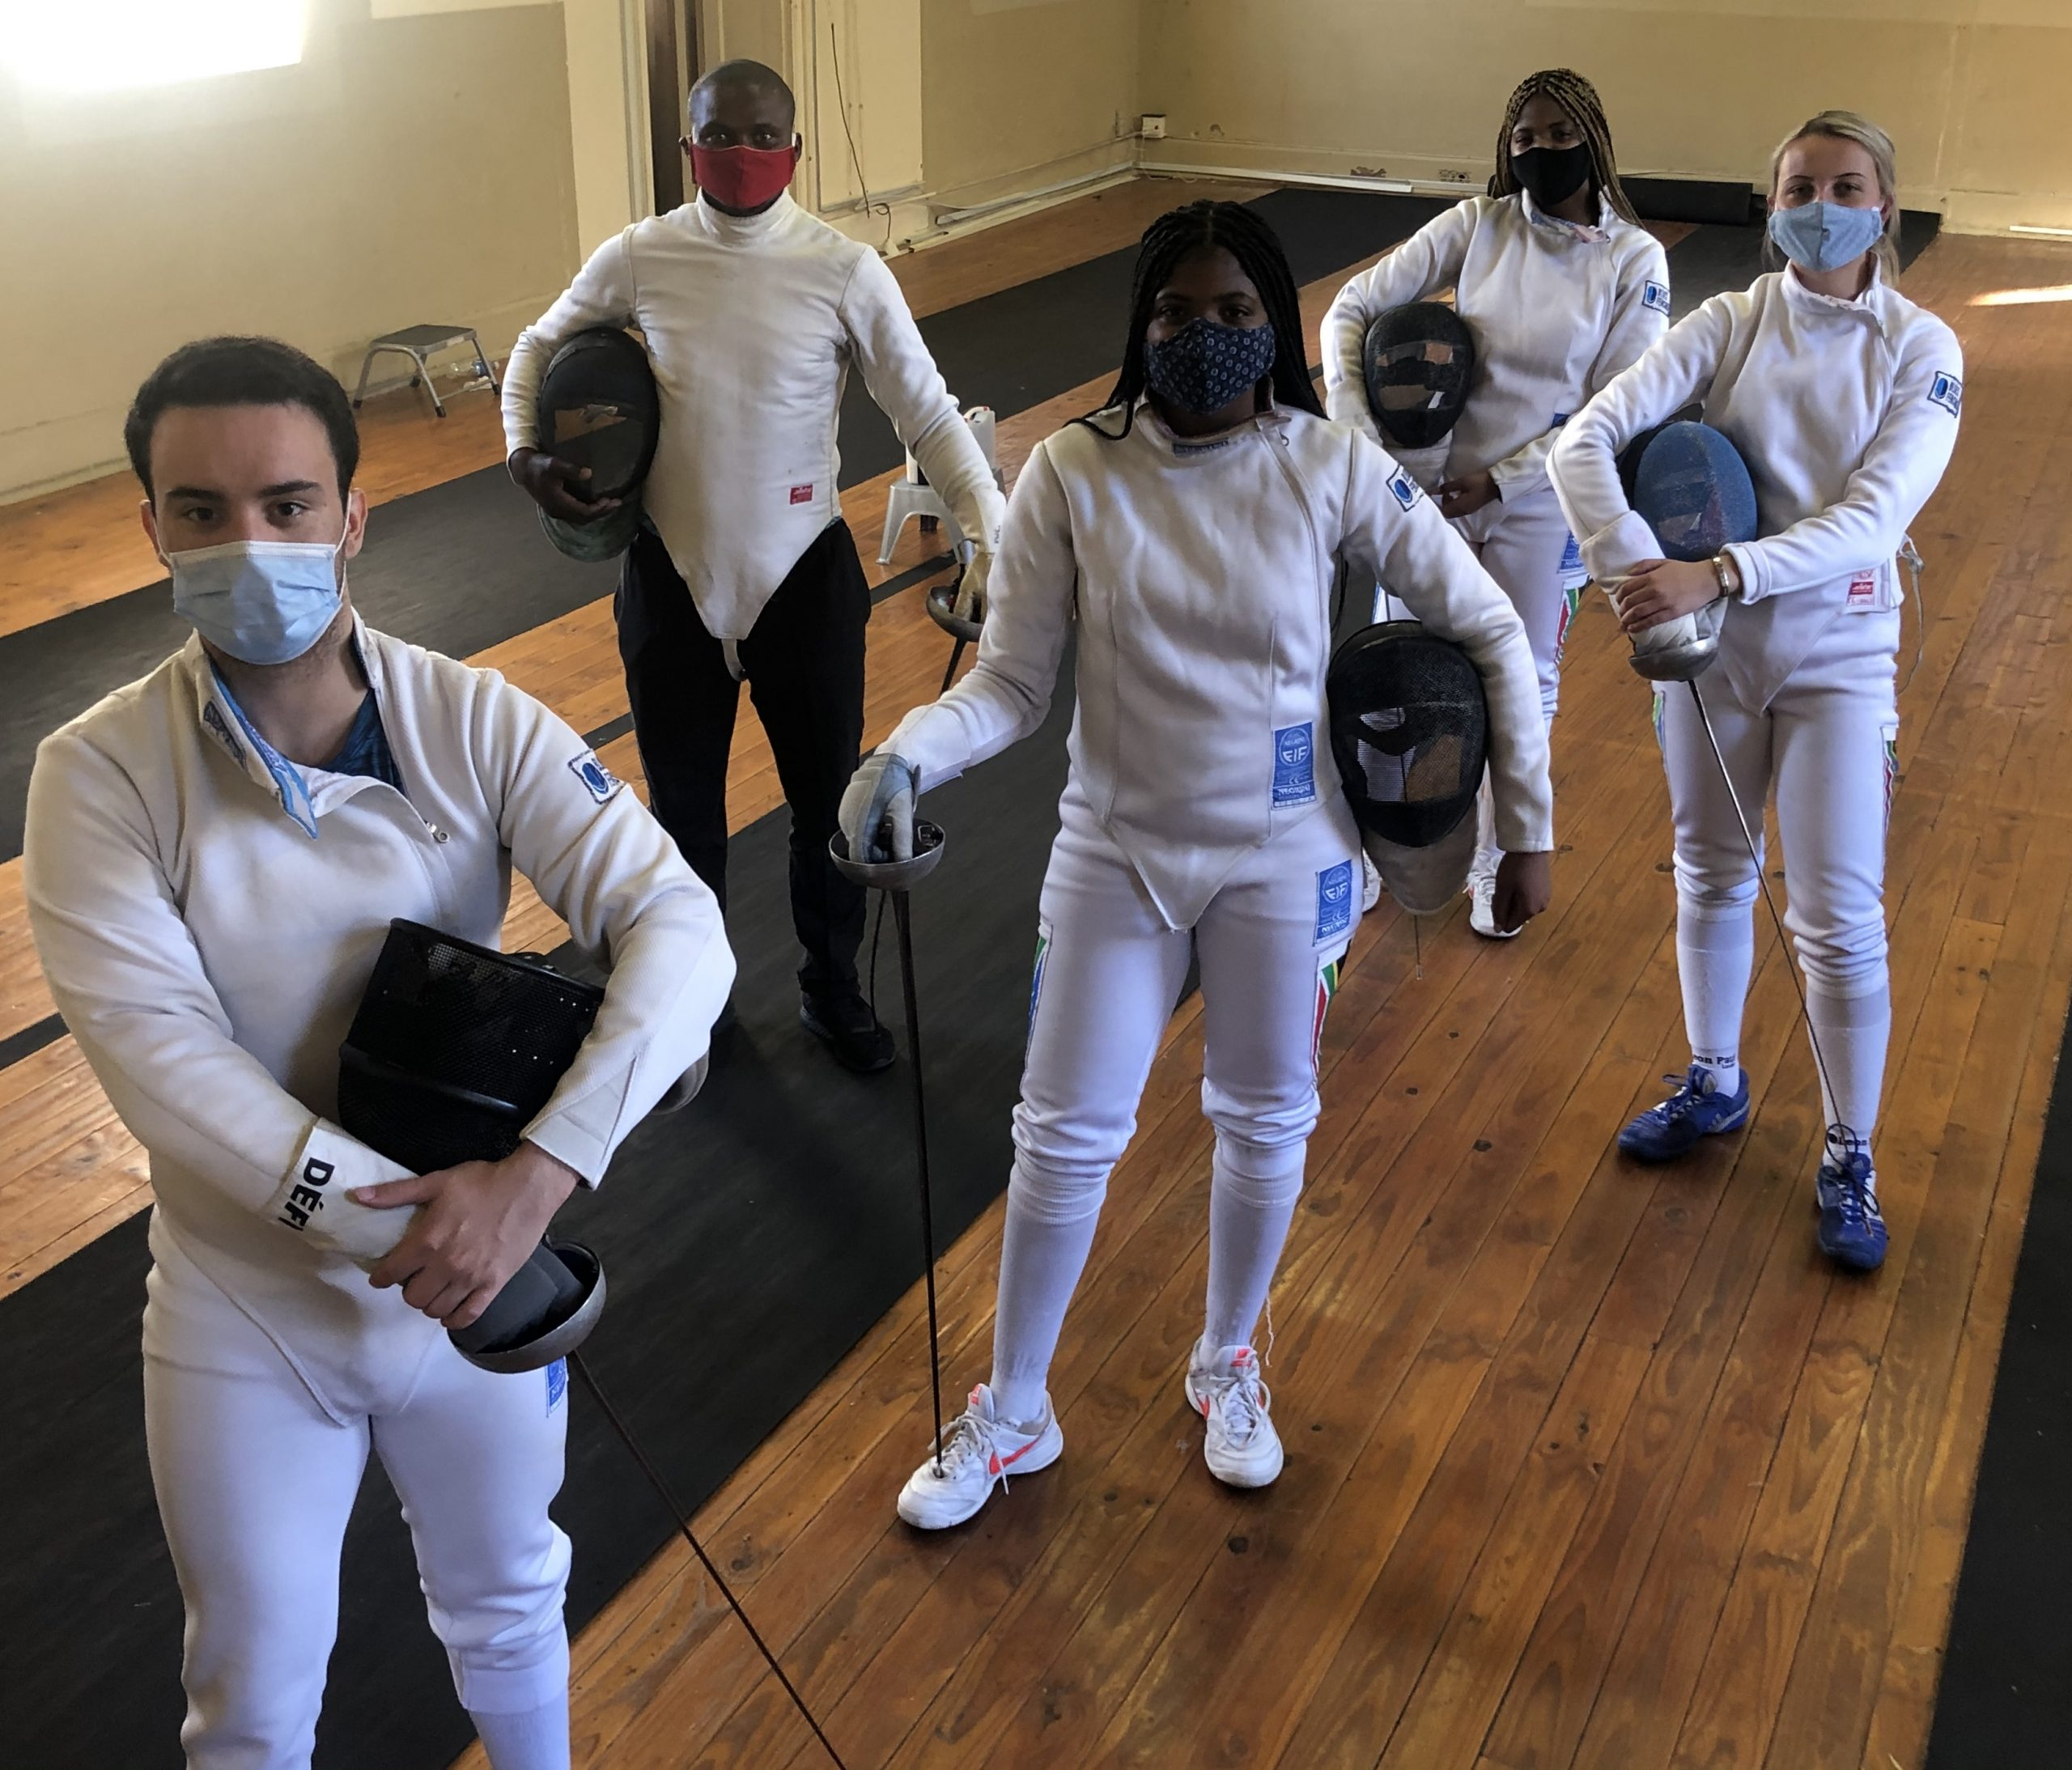 Western Cape Fencing are excited about a return to action